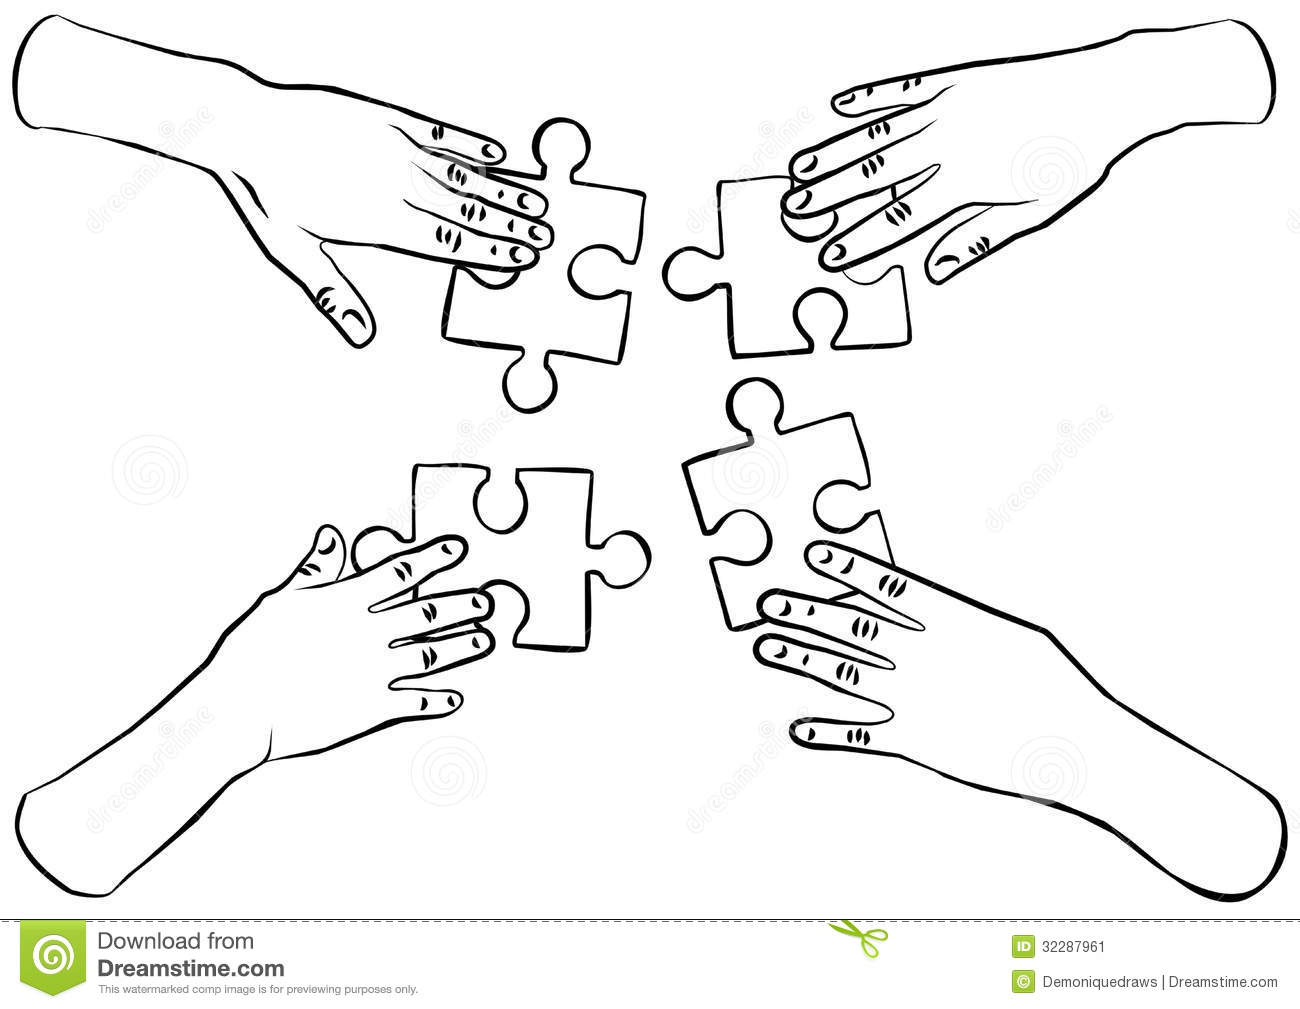 Black And White Hands With Puzzles Teamwork Stock Image - Image ...